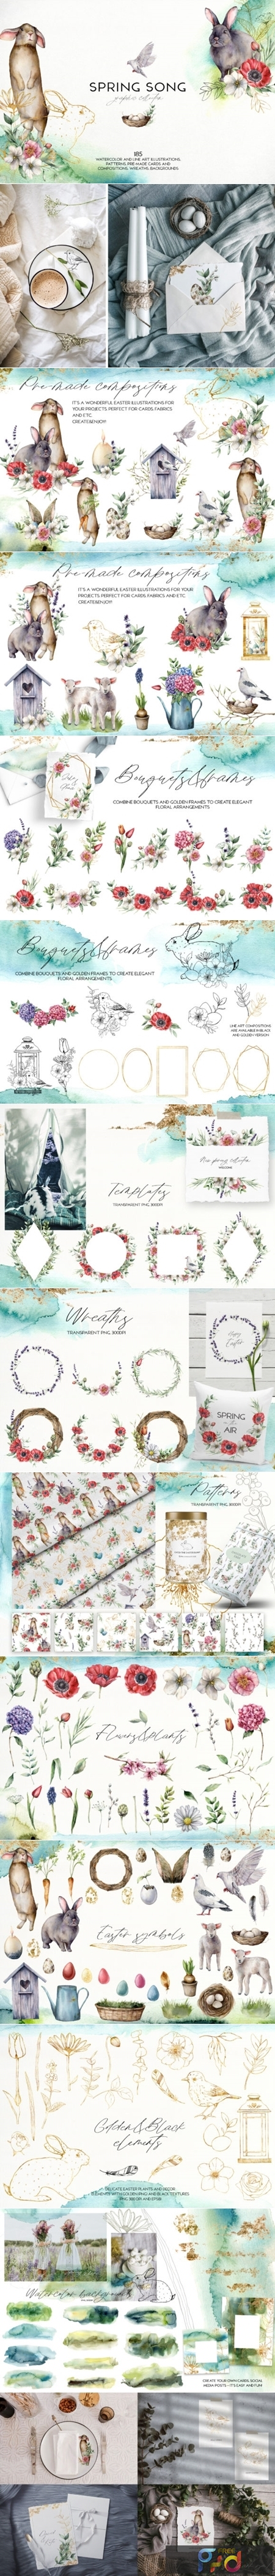 Spring Song Graphic Collection 2933836 1